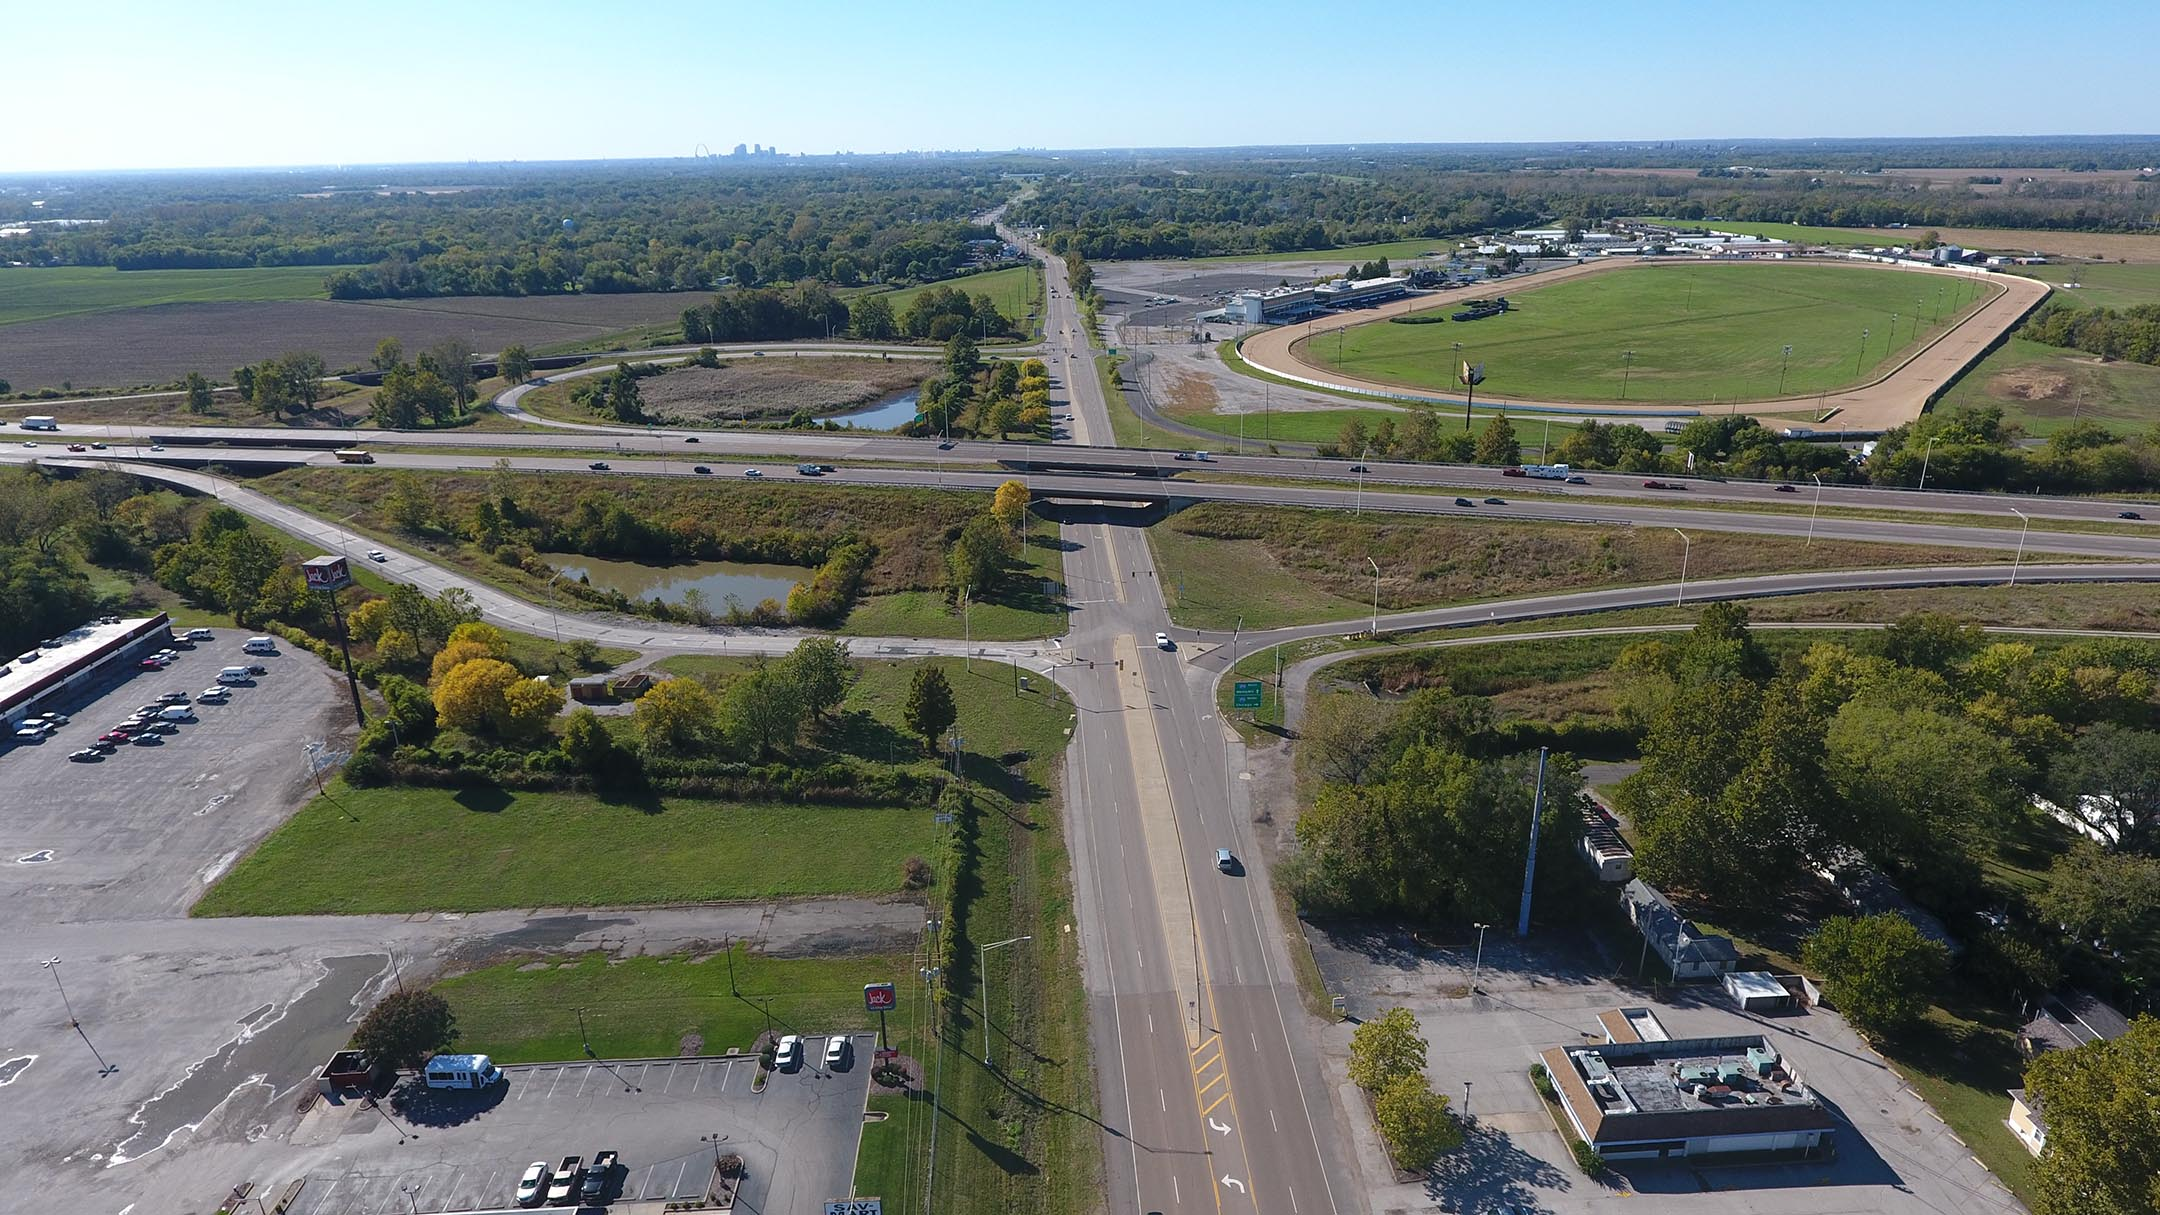 What is your Vision for Collinsville Road?